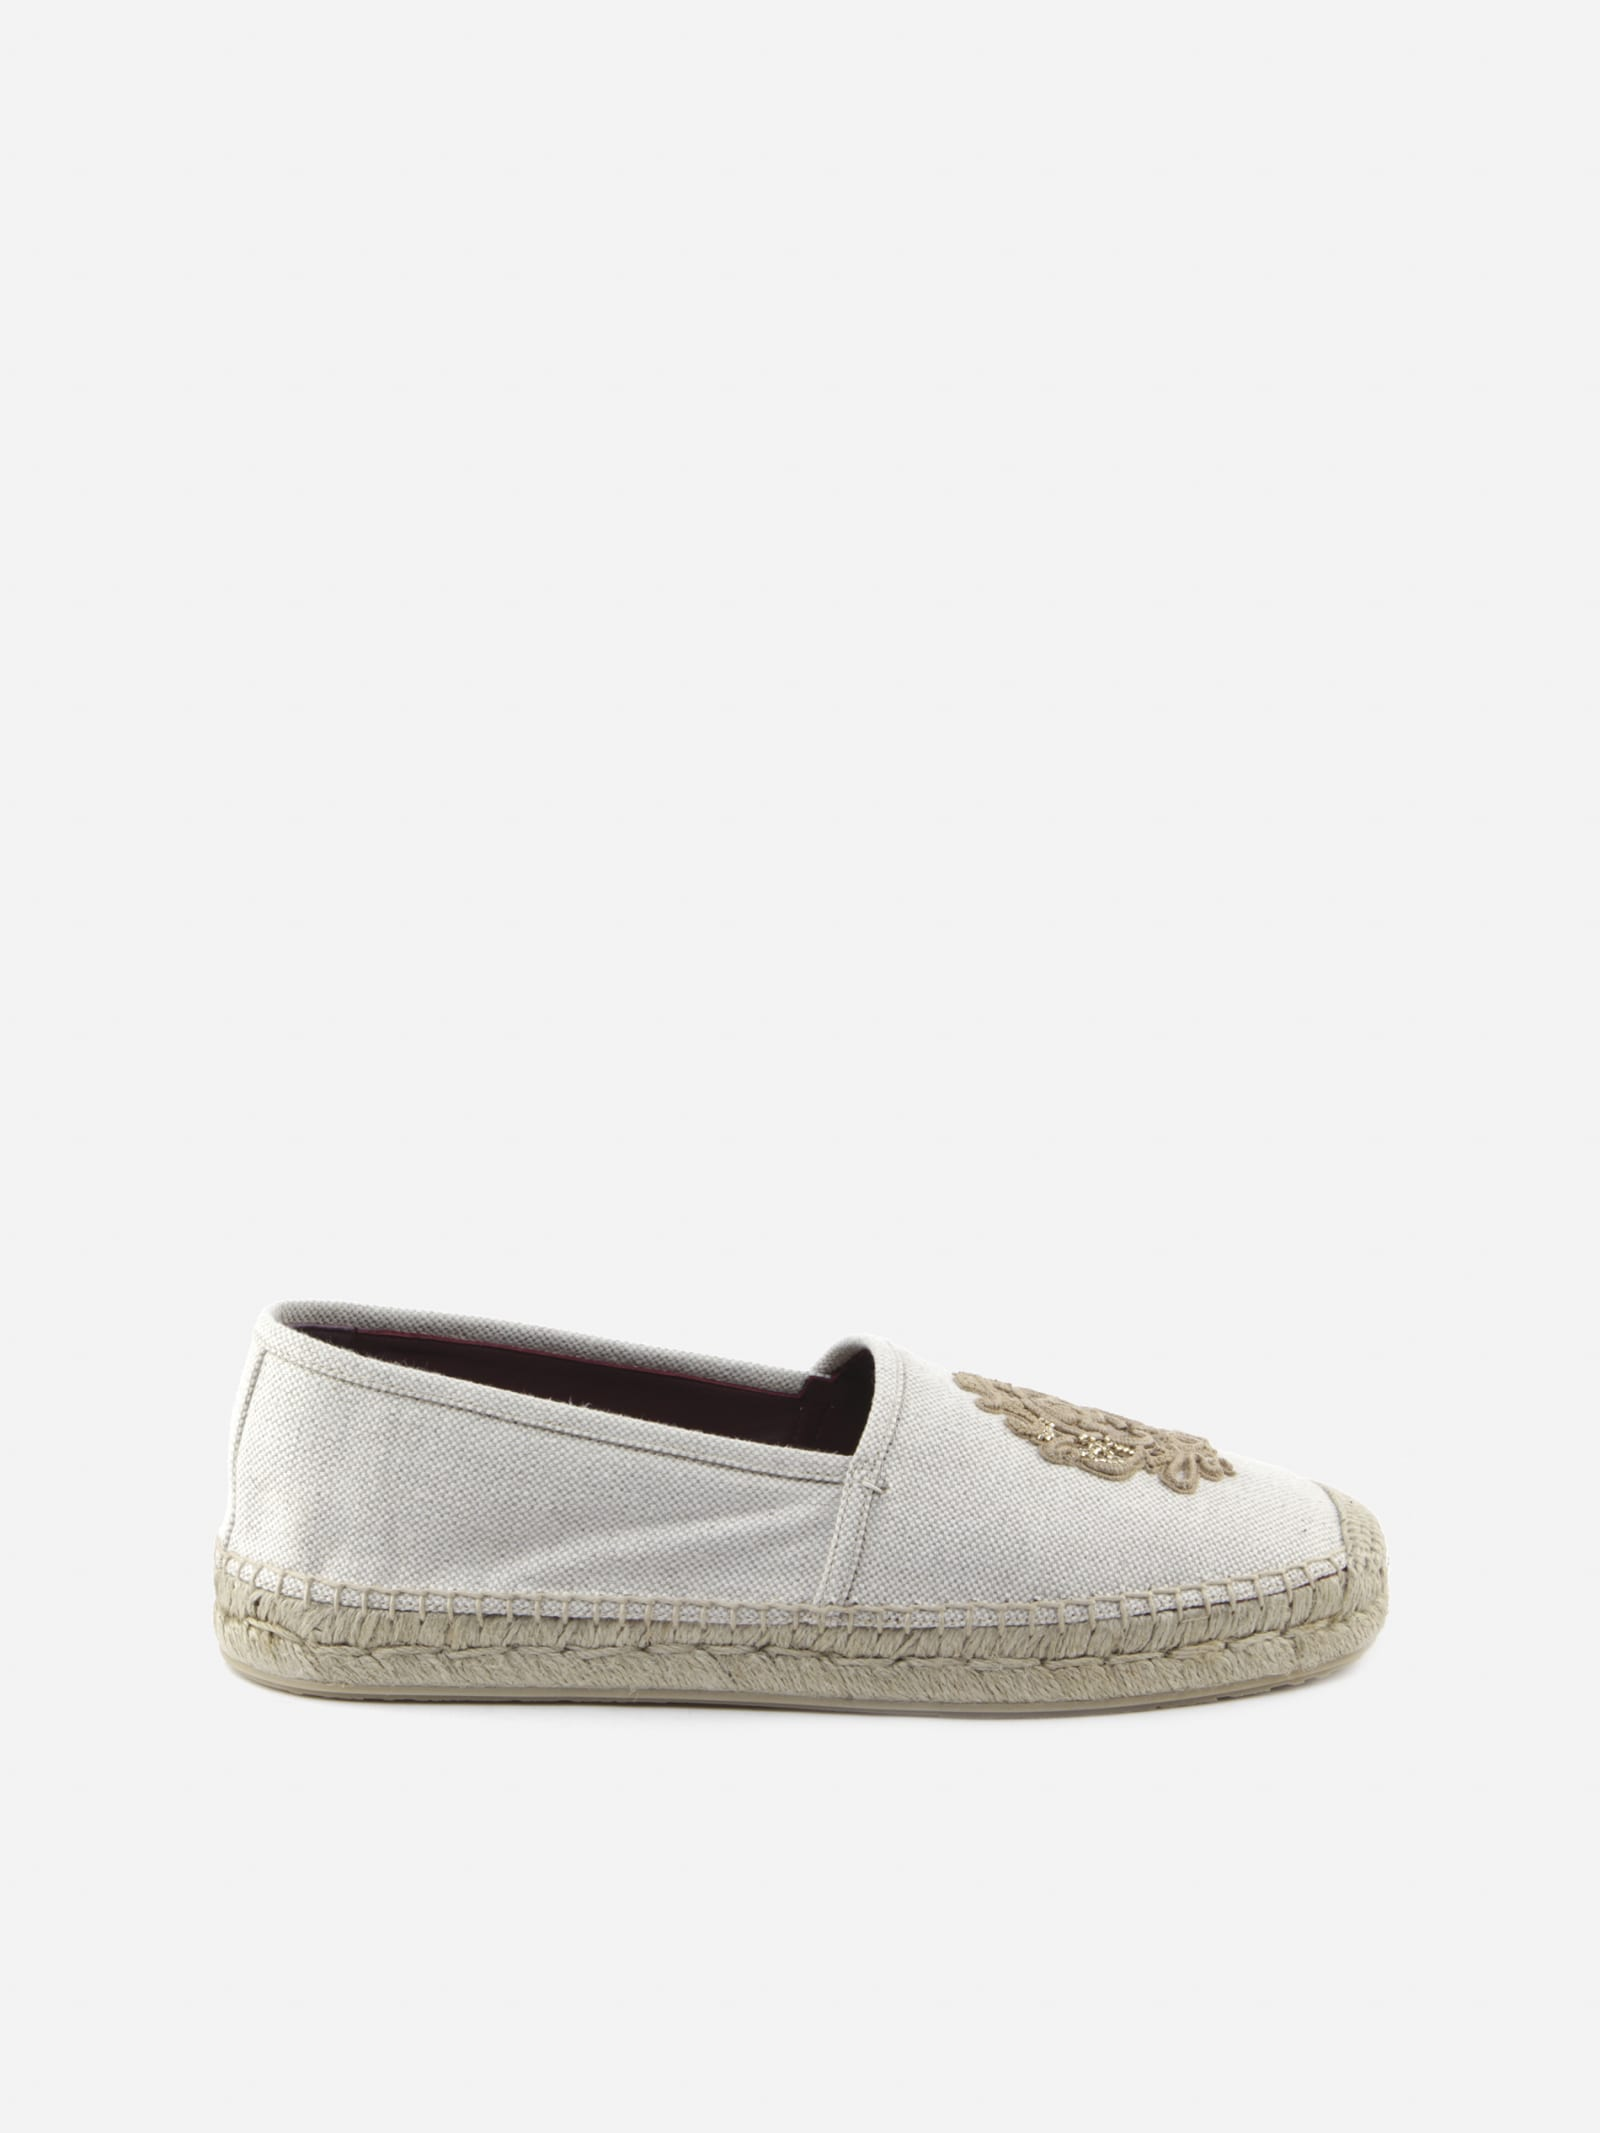 Dolce & Gabbana CANVAS ESPADRILLES WITH EMBROIDERED PATCH